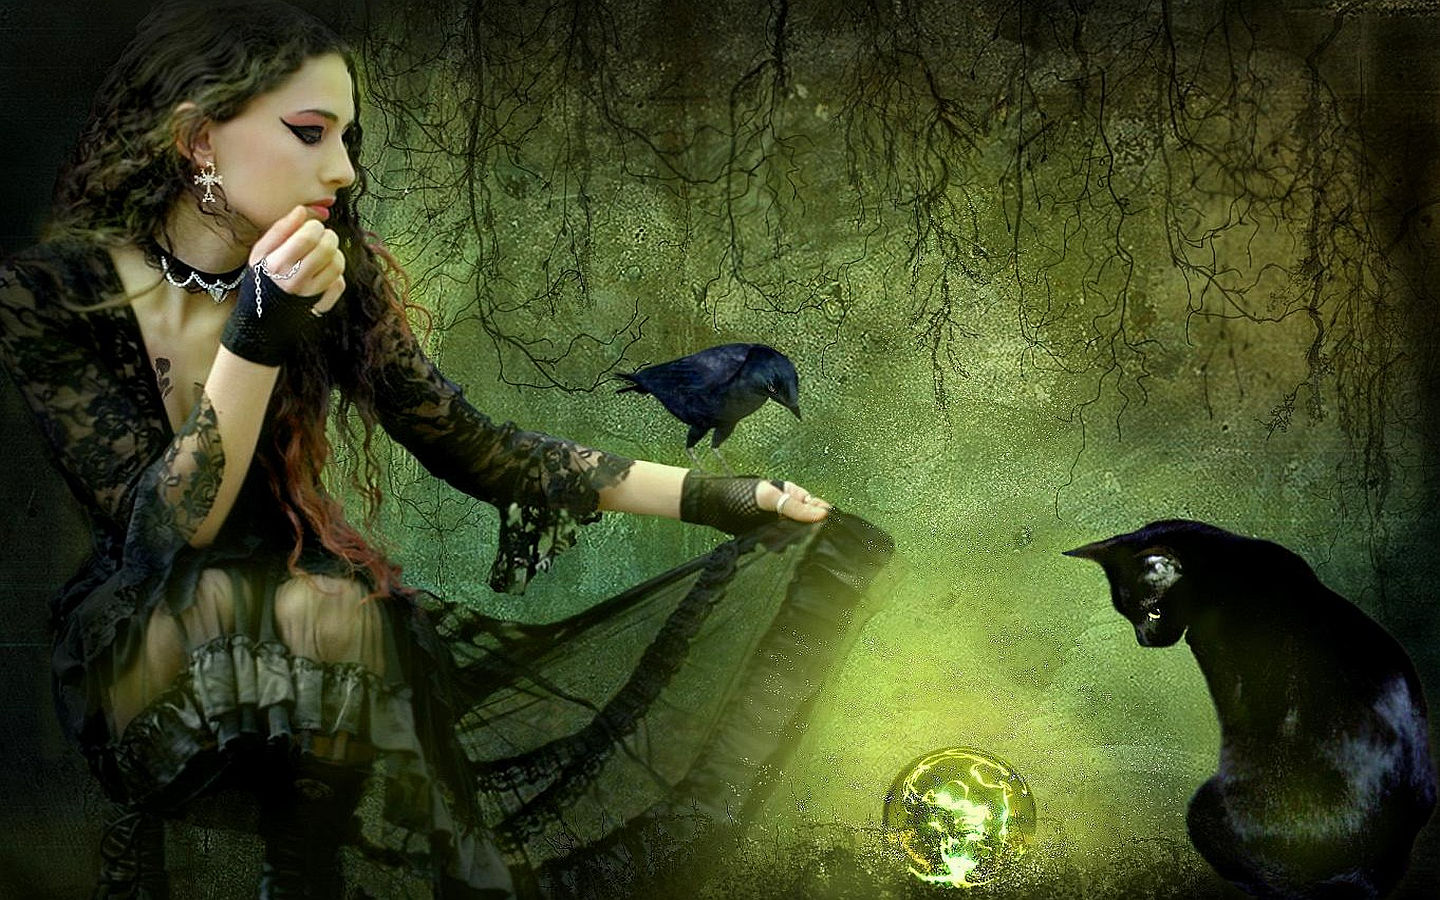 Witch Magic Forest Crystal Ball Raven Black Cat Woman Wallpaper 1440x900